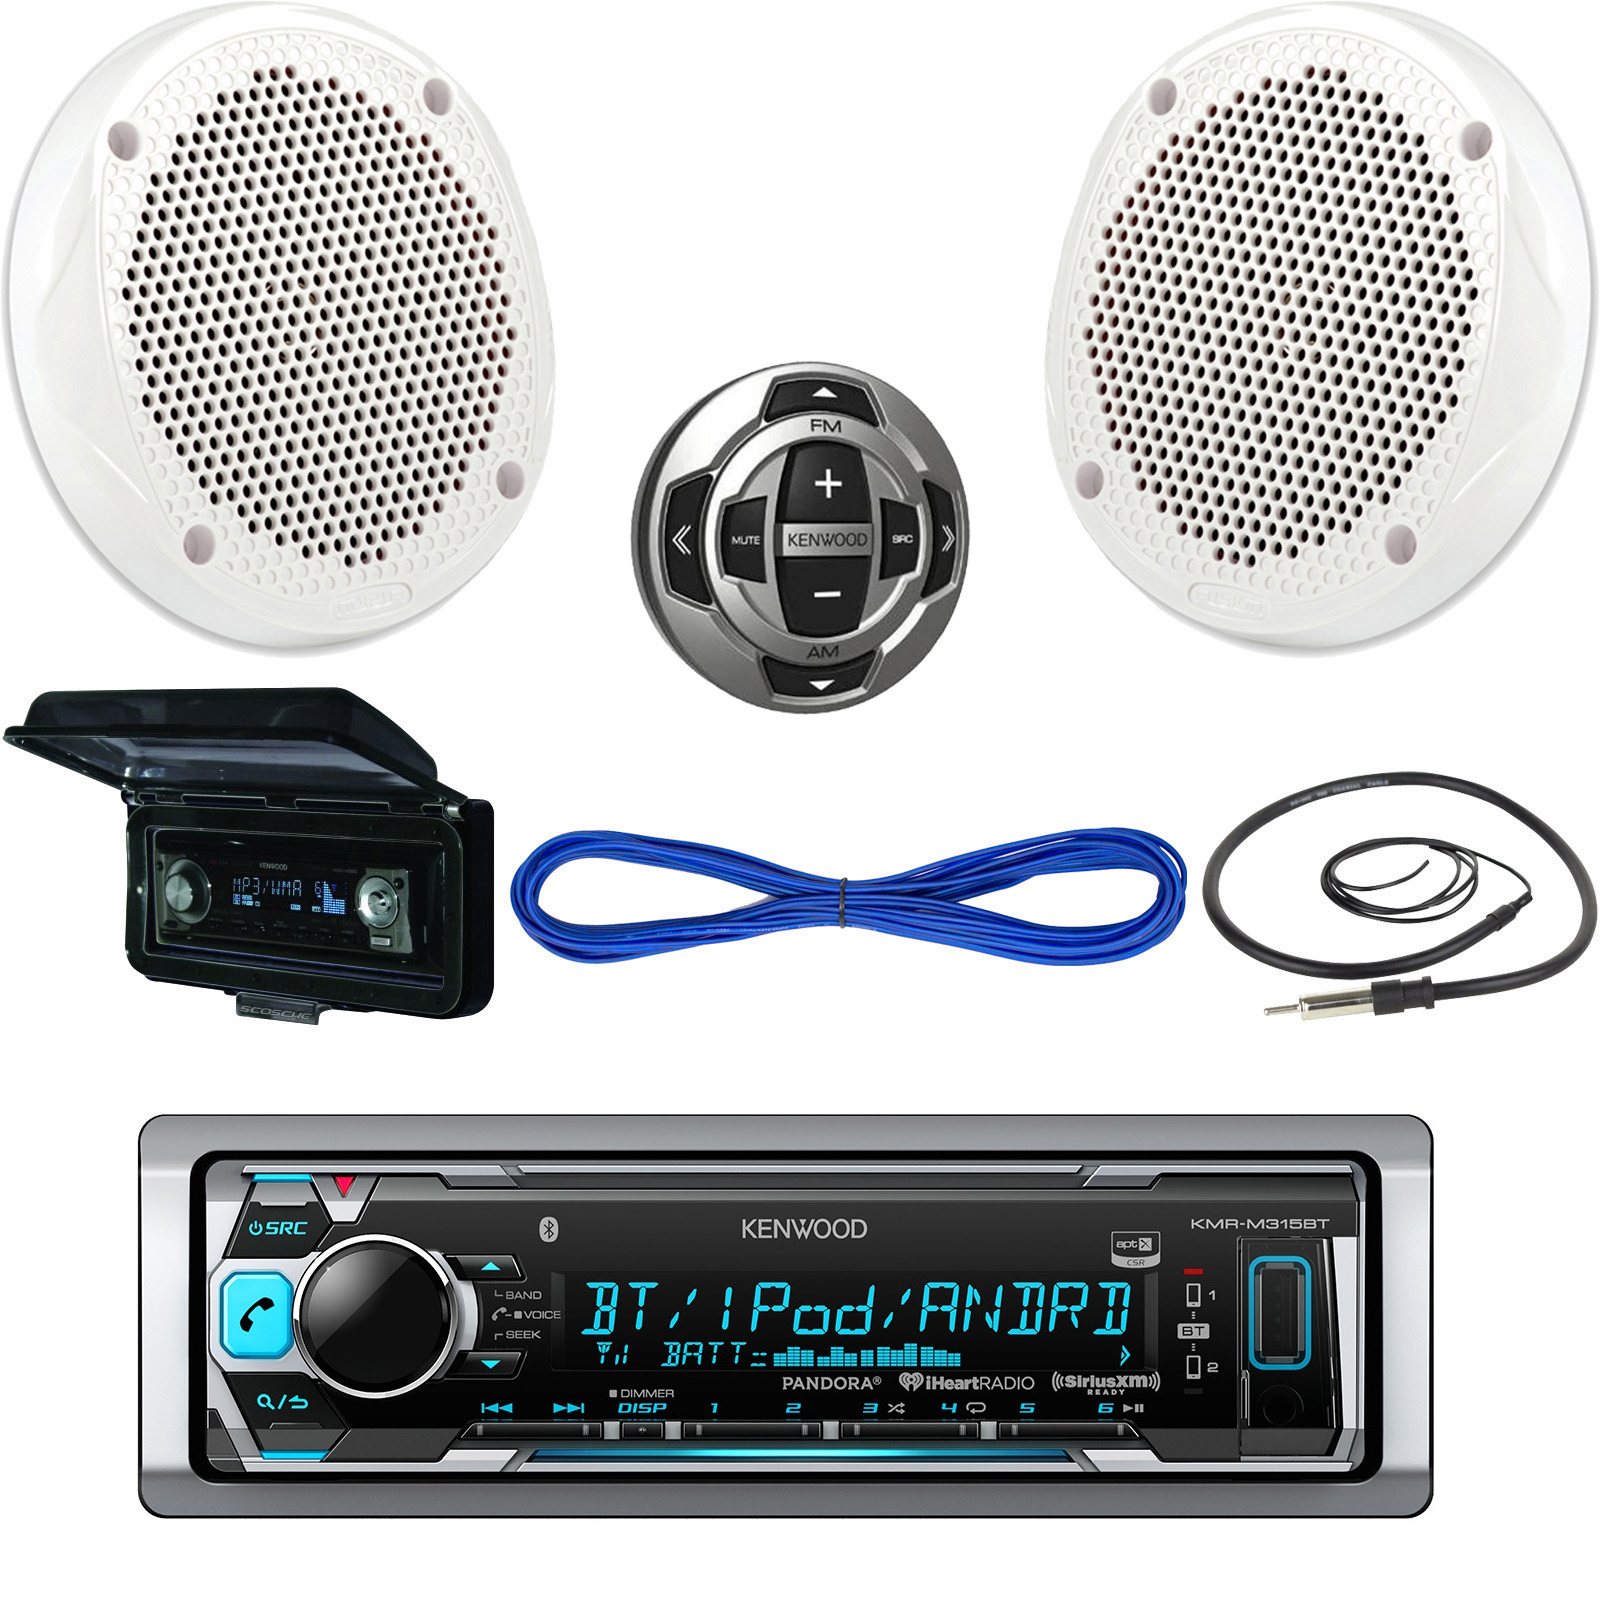 hight resolution of details about kenwood usb bluetooth boat radio remote cover 6 5 200w speakers w wires antenna